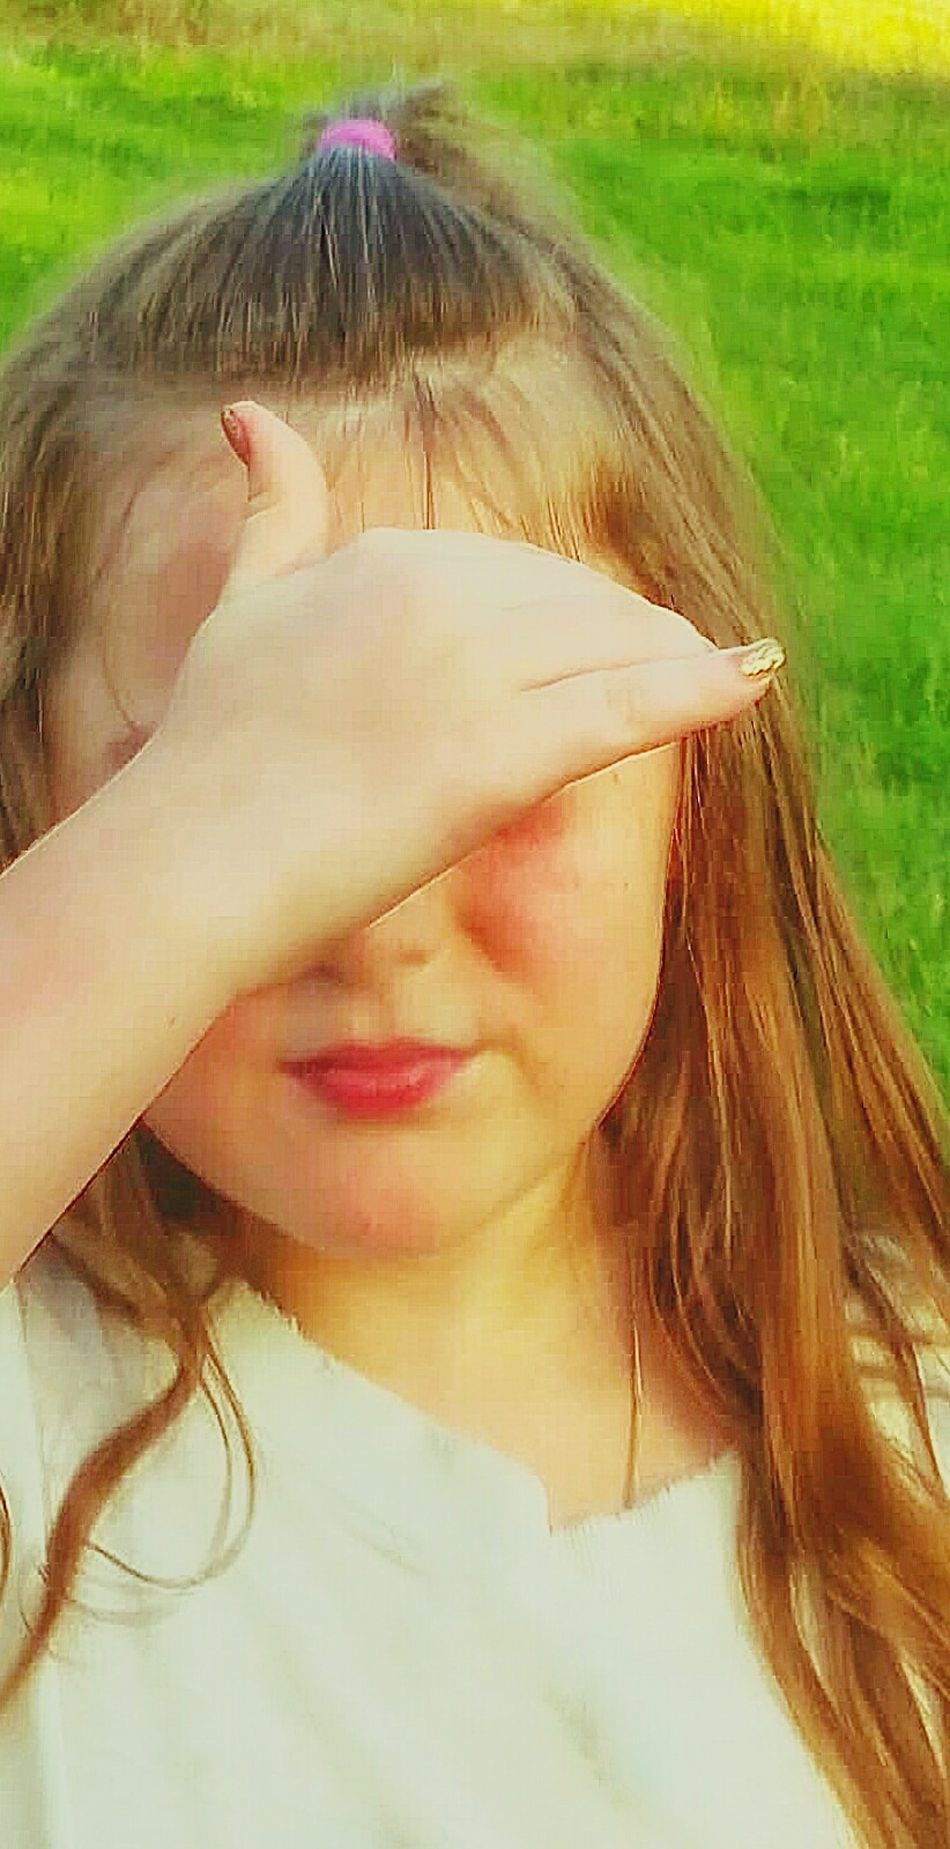 The Portraitist - 2016 EyeEm Awards Girl Hiding Eyes Long Brown Hair Freckles Flushing Cheeks Child Photography Outdoor Photography Everyday Emotion Natural Light Photo Natural Light Portrait